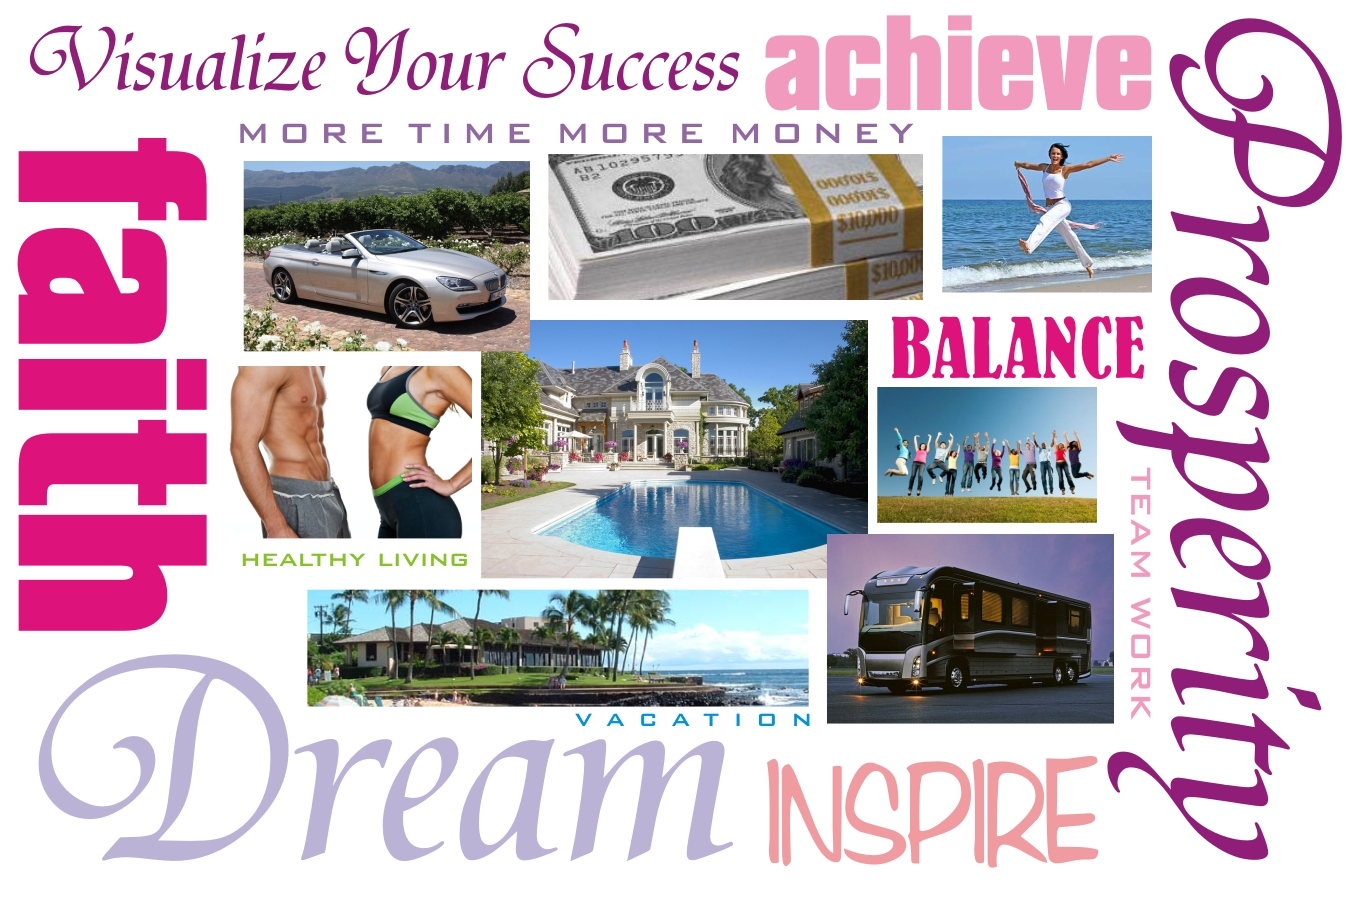 Beachbody – The Company Behind Shakeology